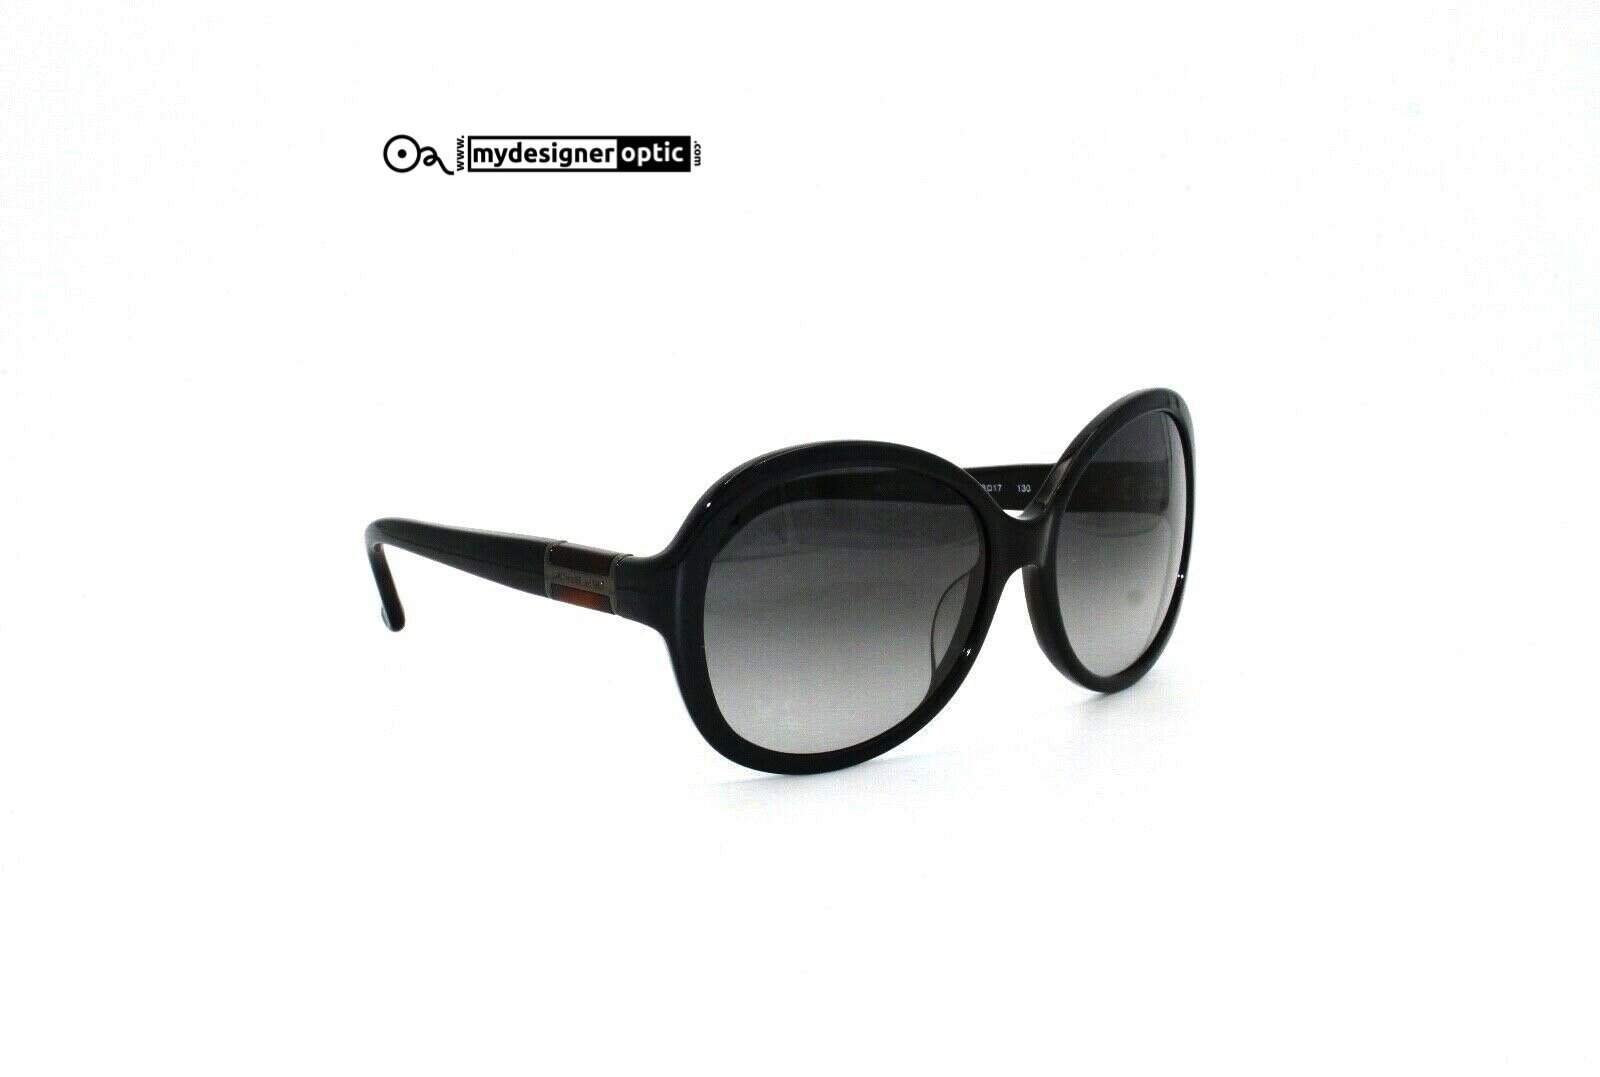 Michael Kors Sunglasses Jennah (MKS299) 001 58-17 130 Made in Italy - Mydesigneroptic